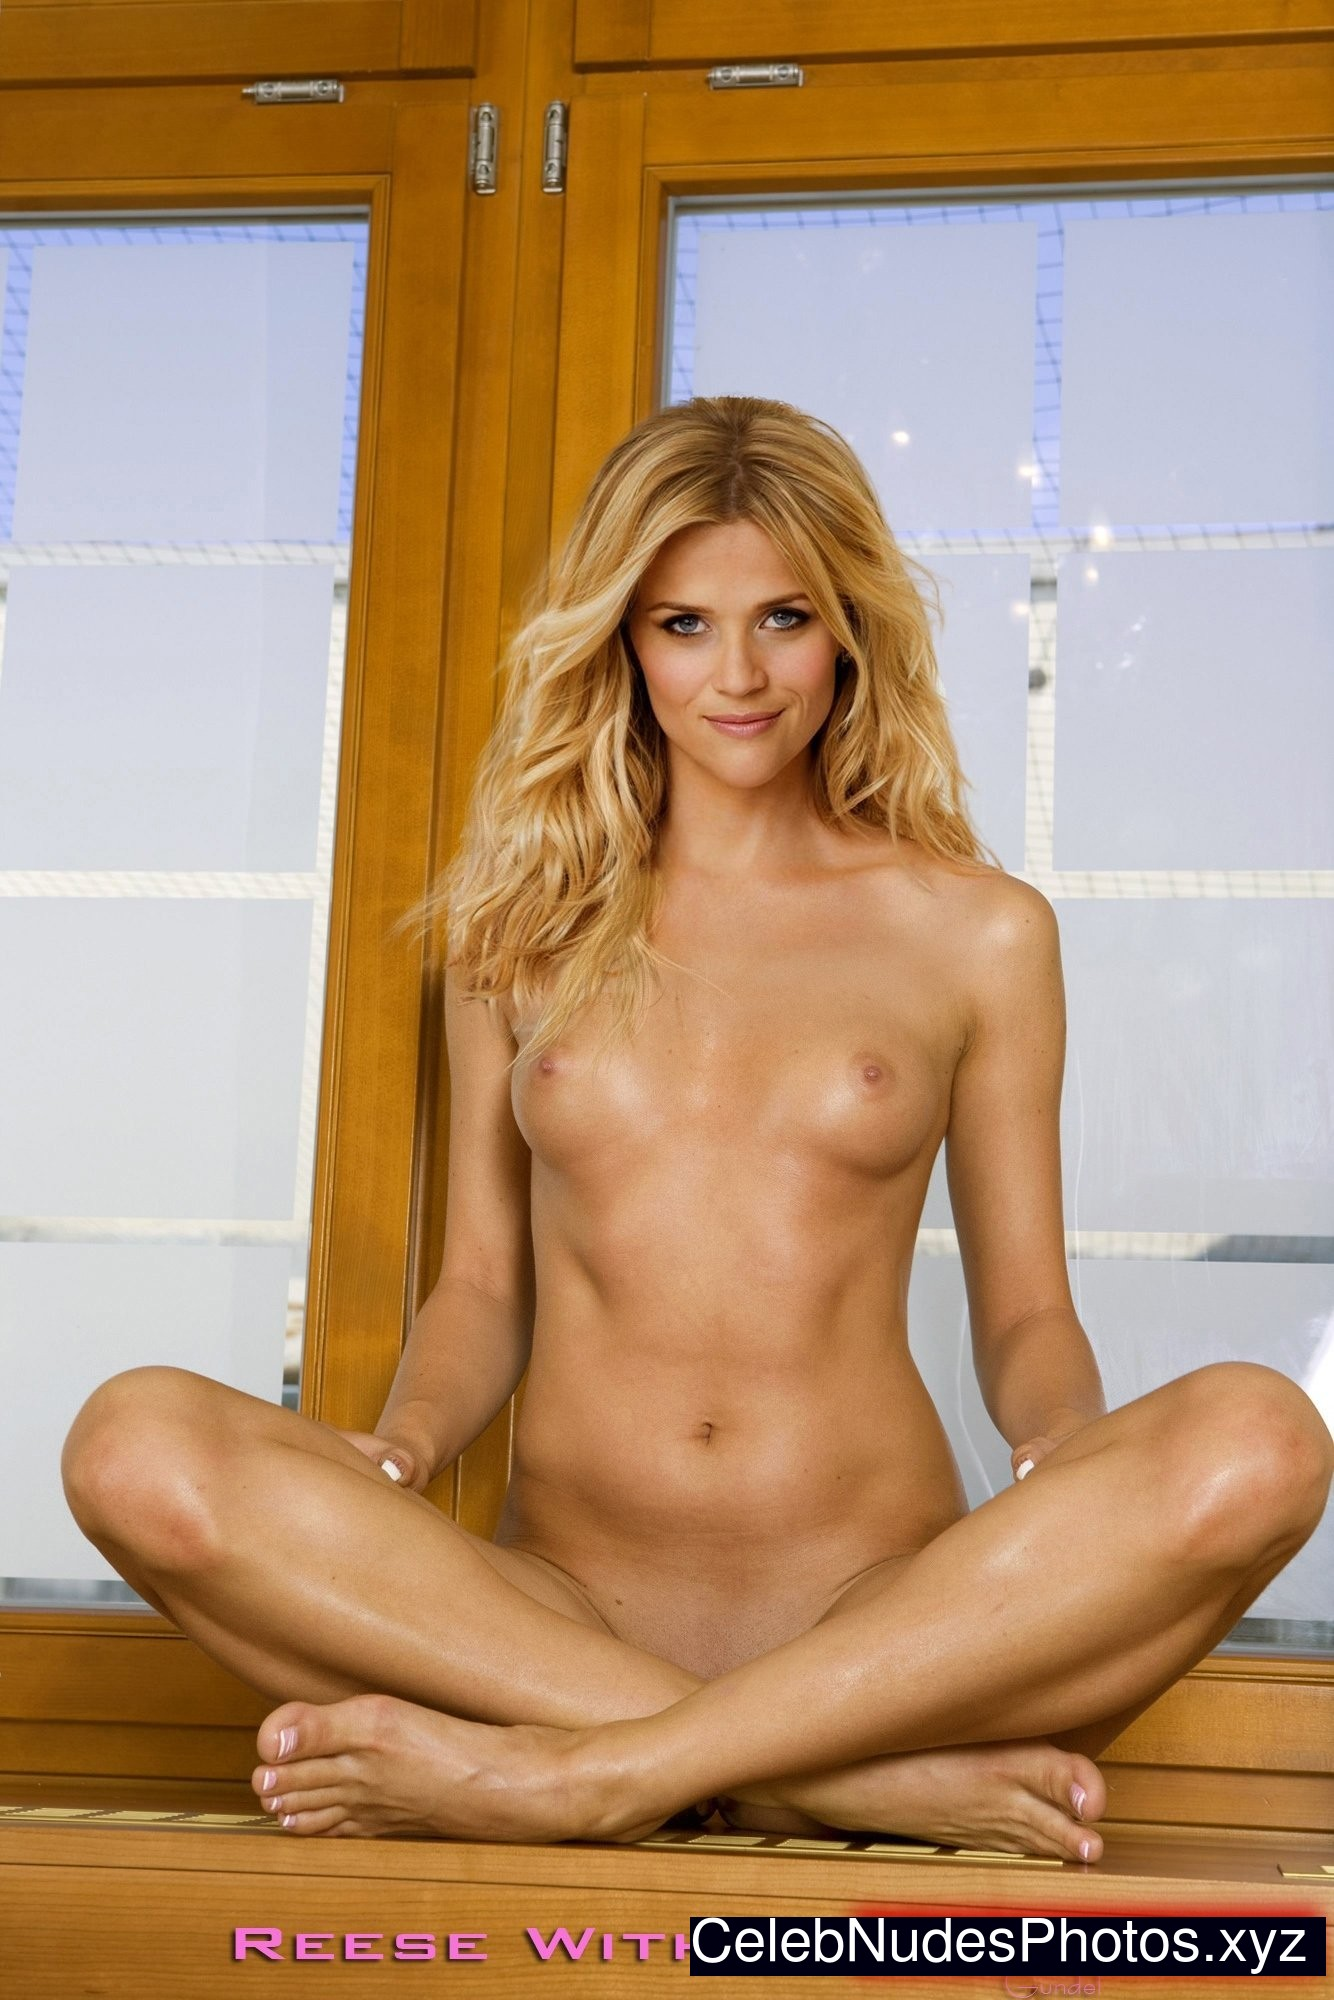 Reese Witherspoon Naked celebrity picture sexy 9